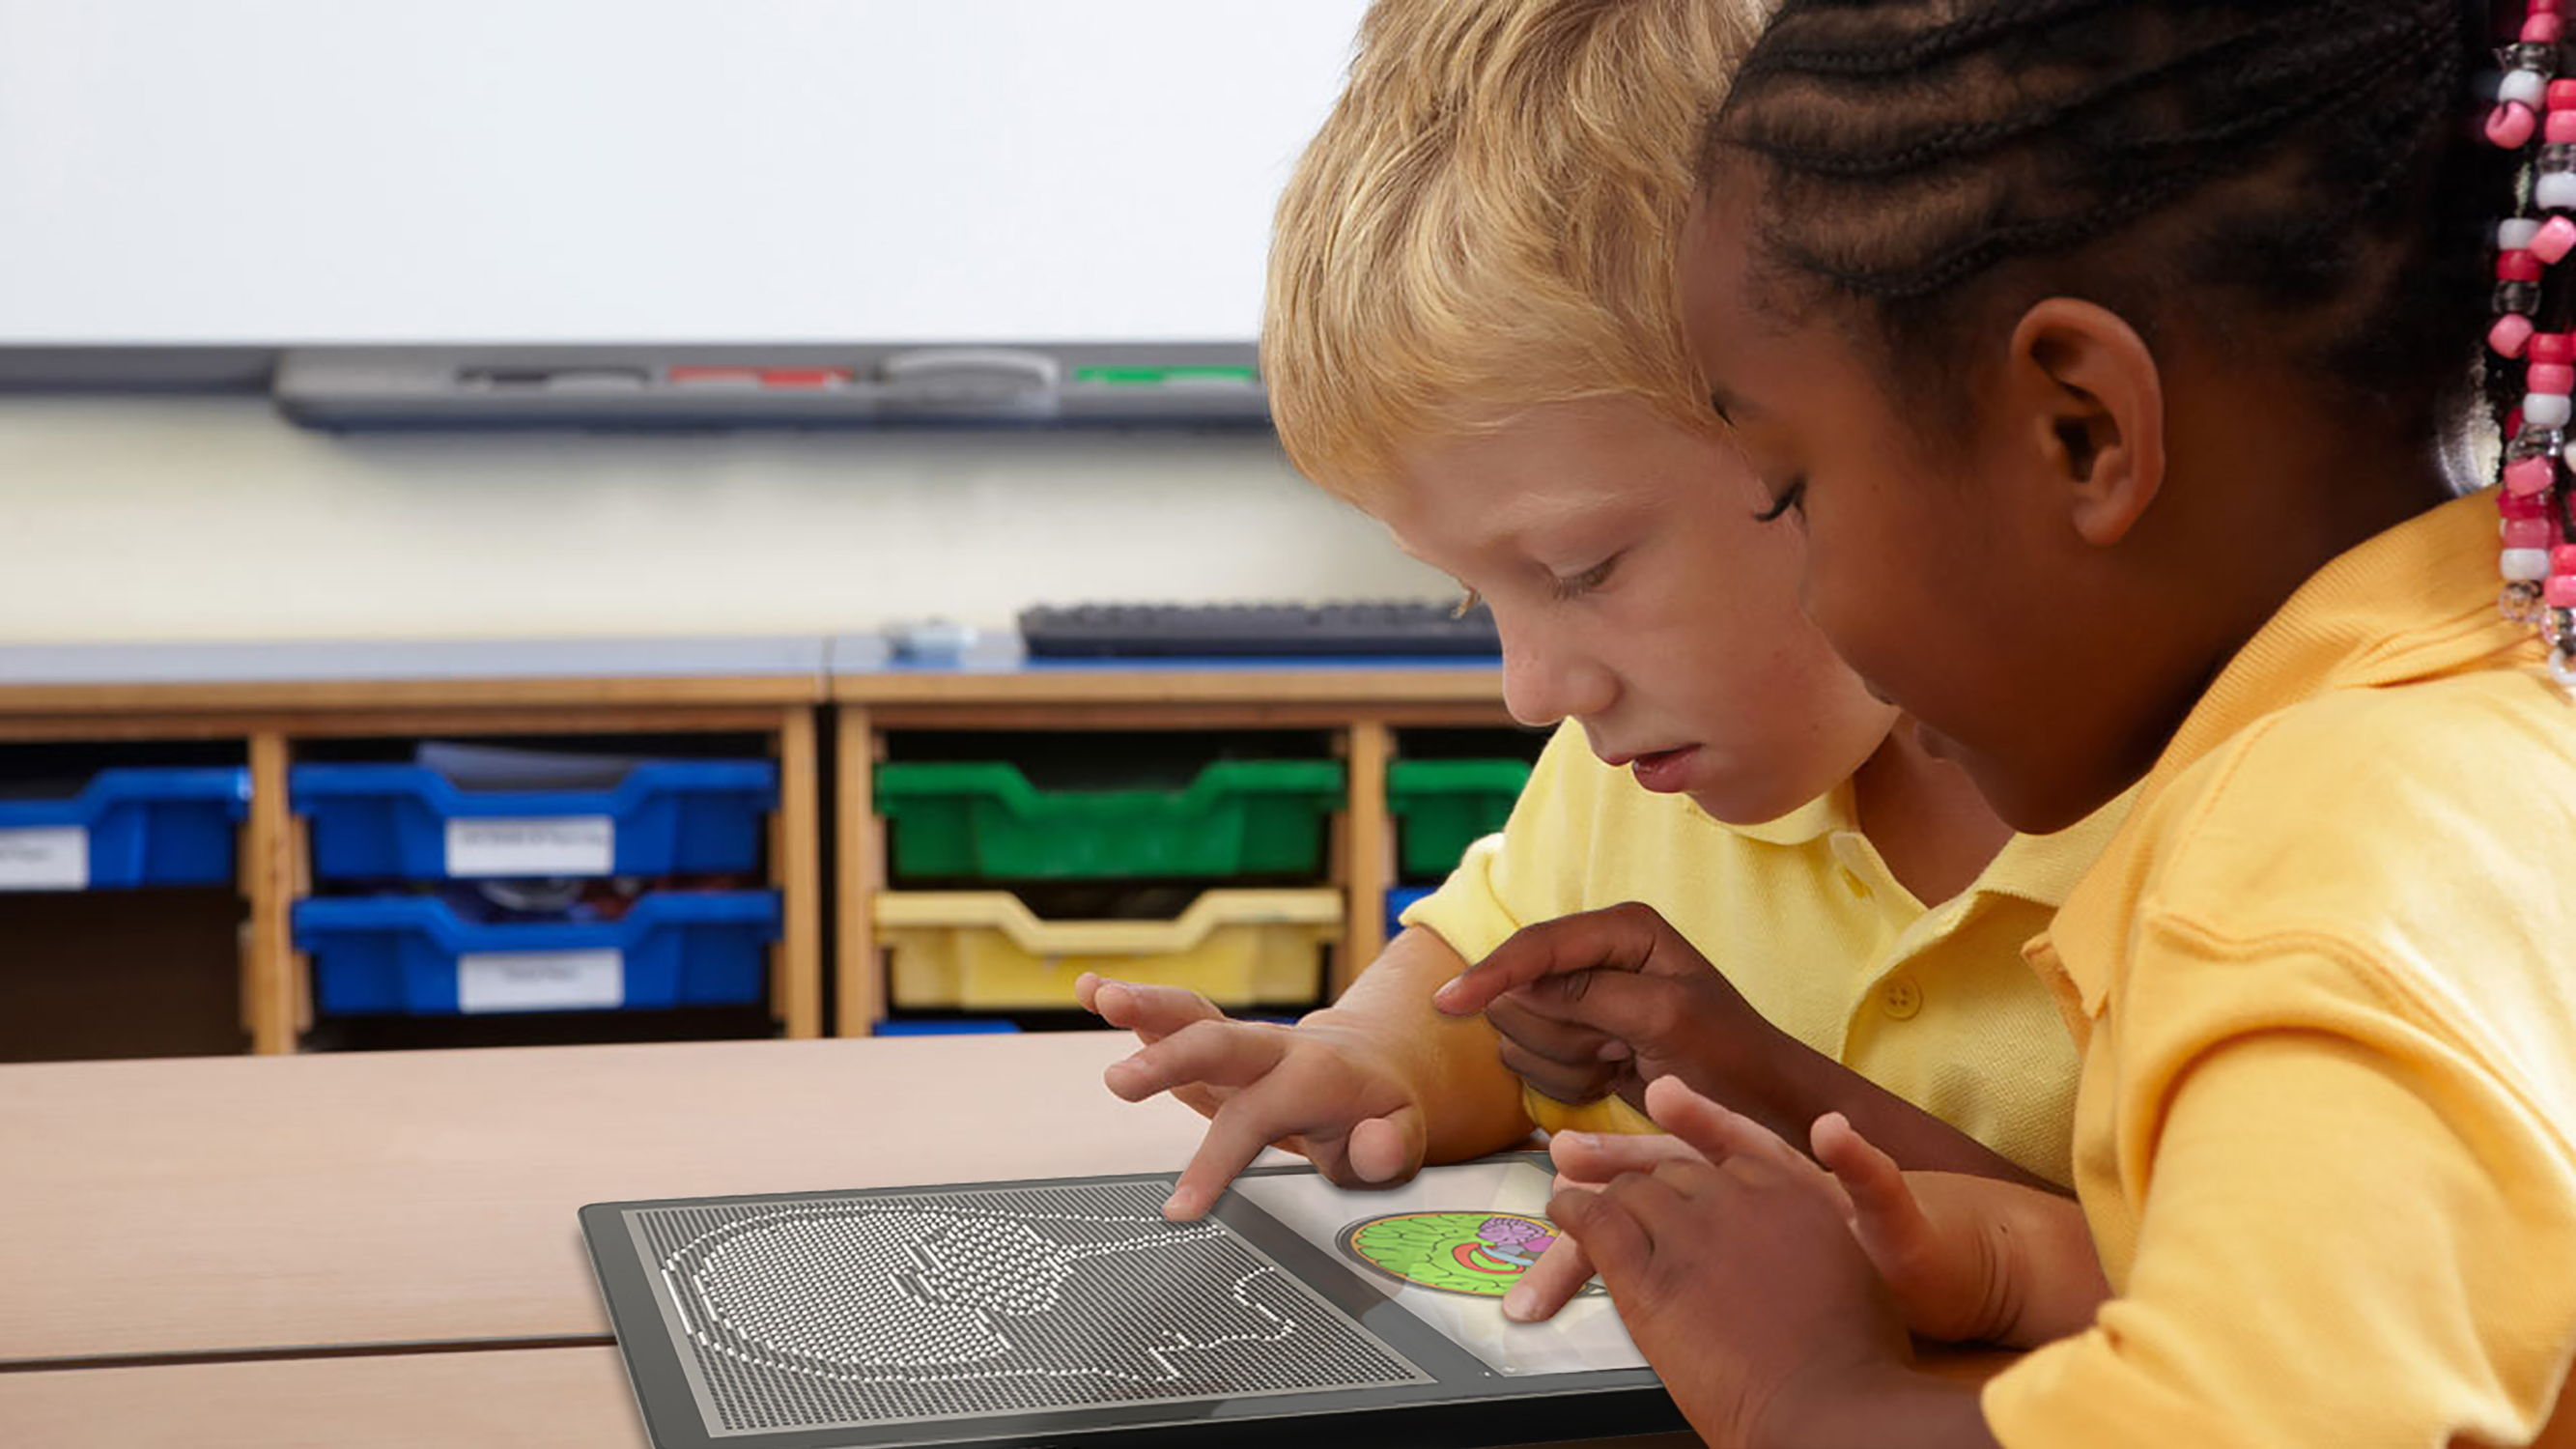 Two young boys exploring the human brain tactually and visually on the Blitab tablet.